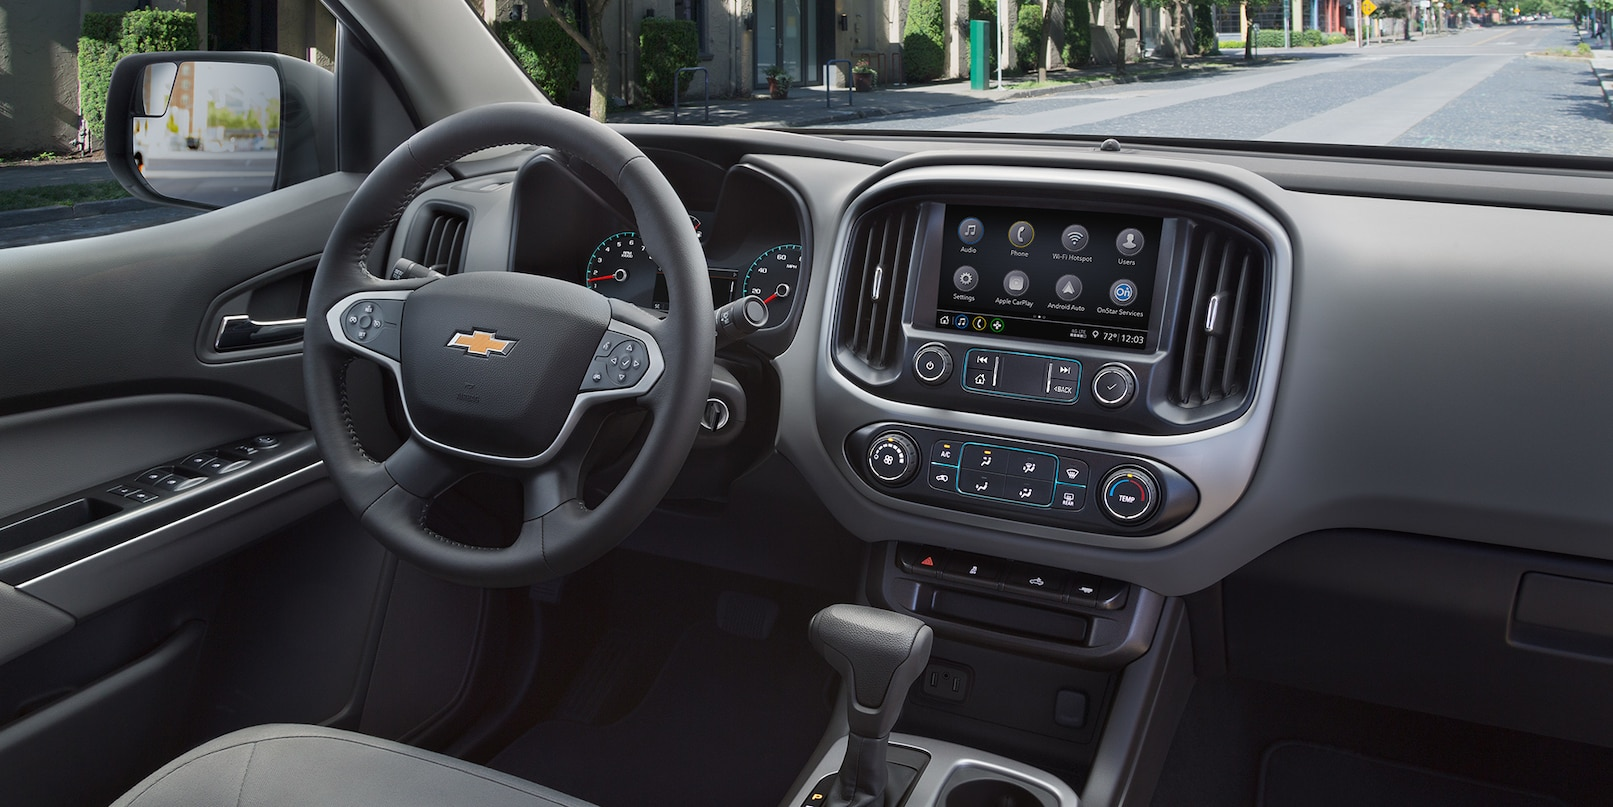 Take Command in the Chevrolet Colorado!